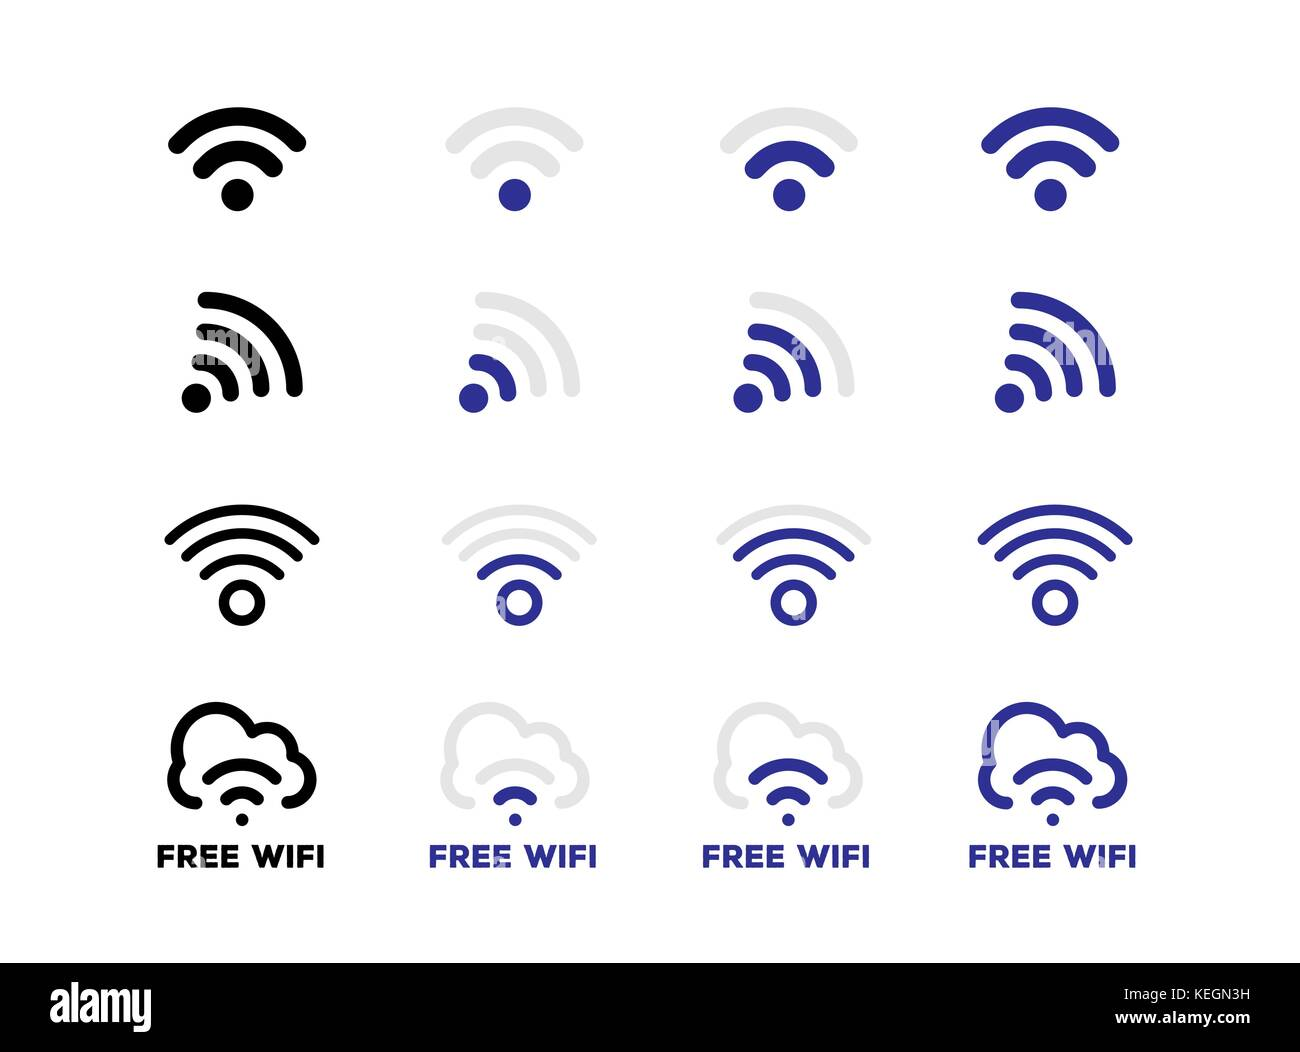 Internet network free Wifi connection icon set in vector format - Stock Image